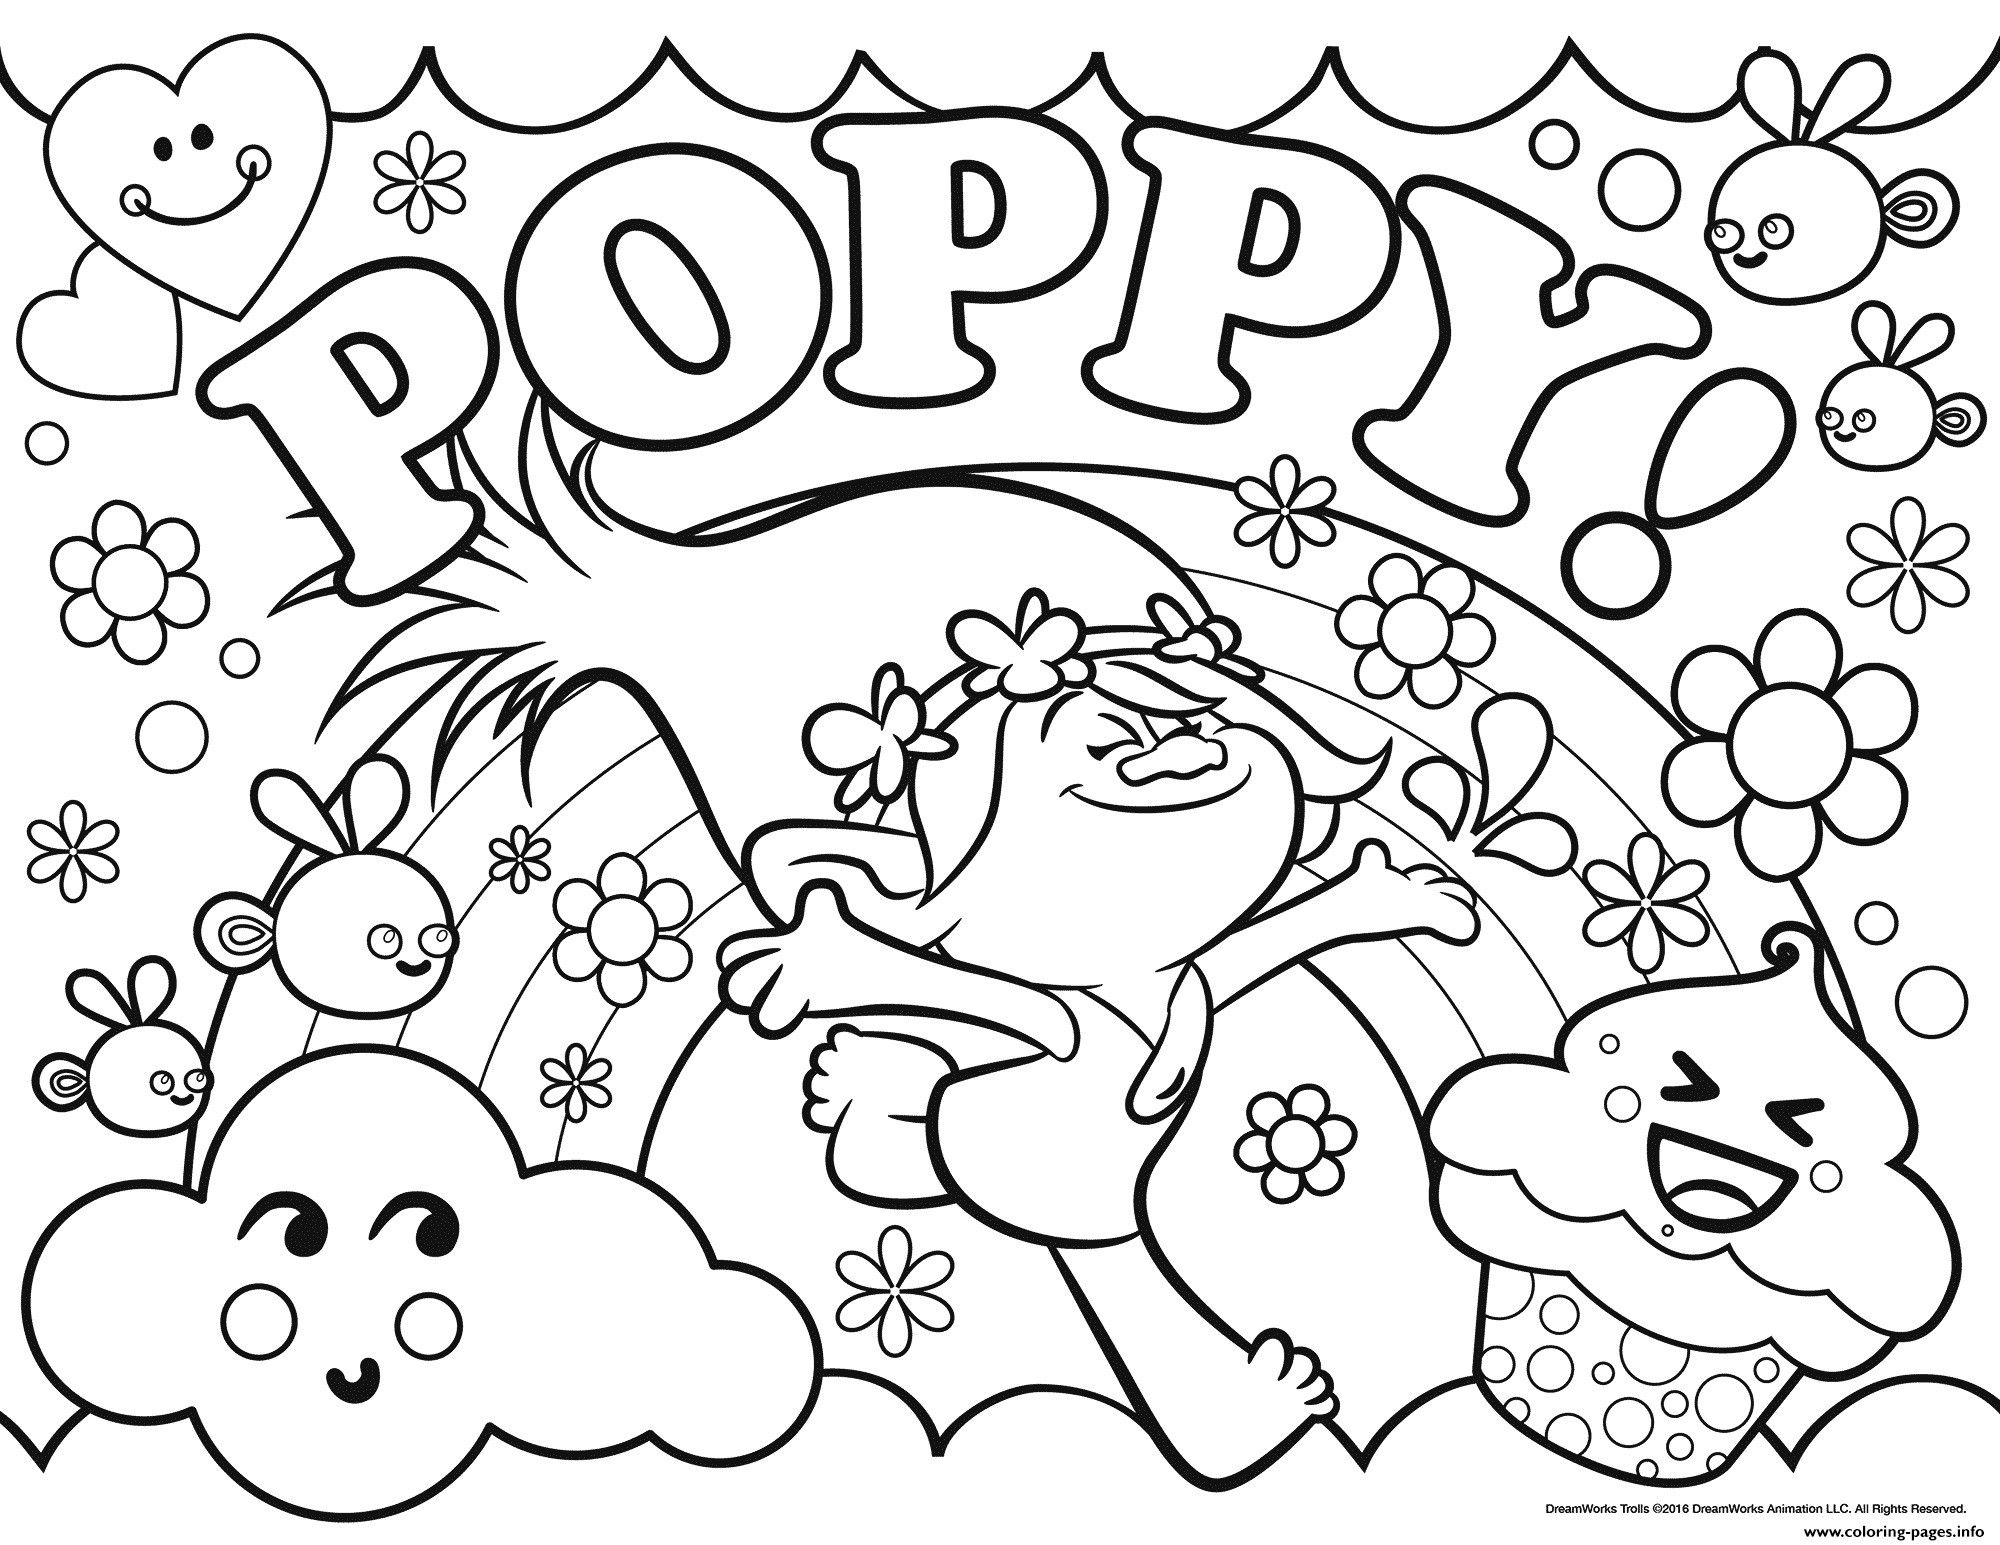 Trolls Coloring Book Pages Poppy Coloring Page Cartoon Coloring